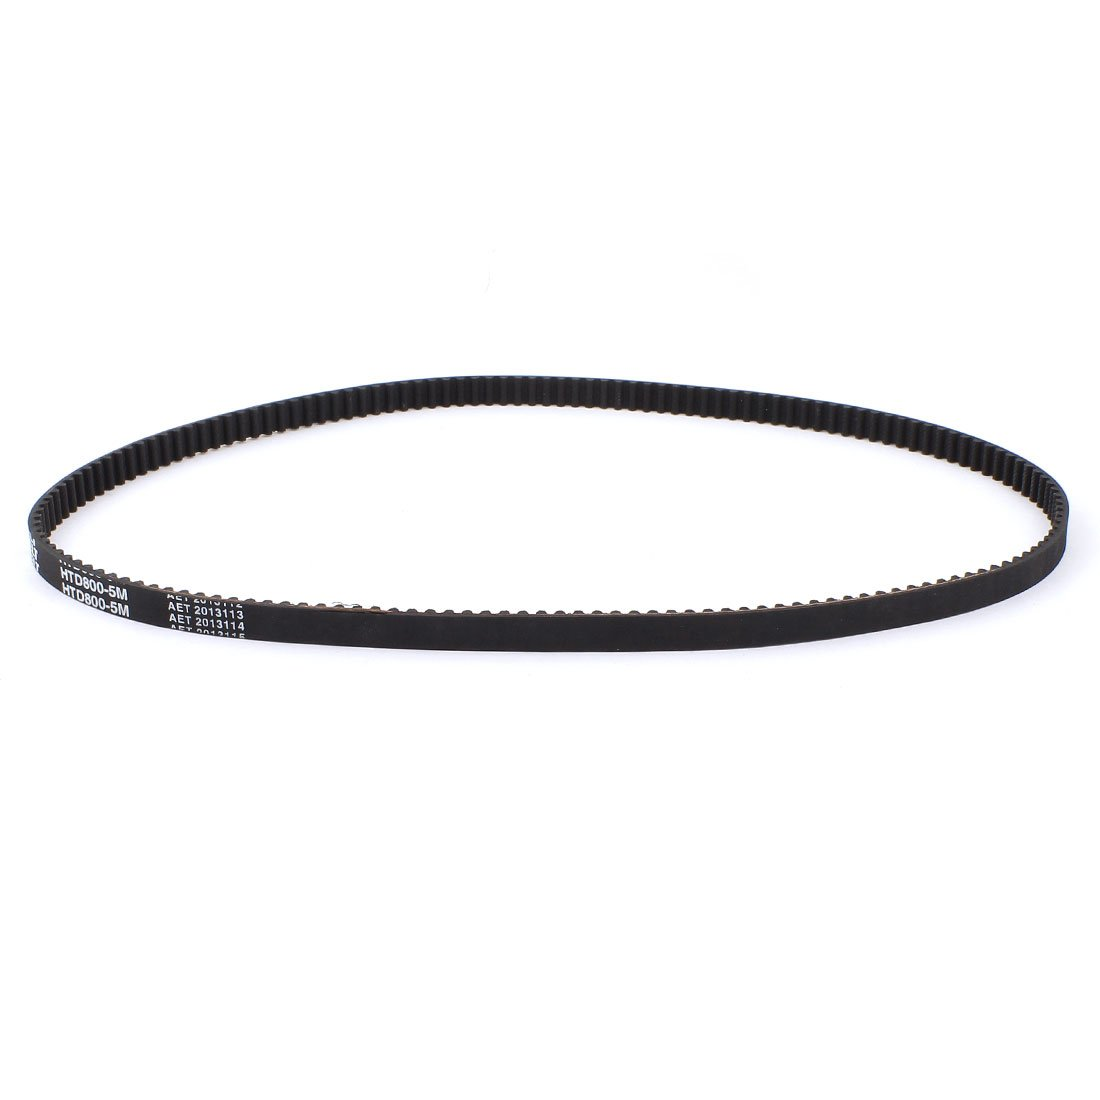 HTD800-5M HTD5M-800 5mm Pitch 10mm Width Pulley Drive Timing Belt uxcell a15010500ux0730